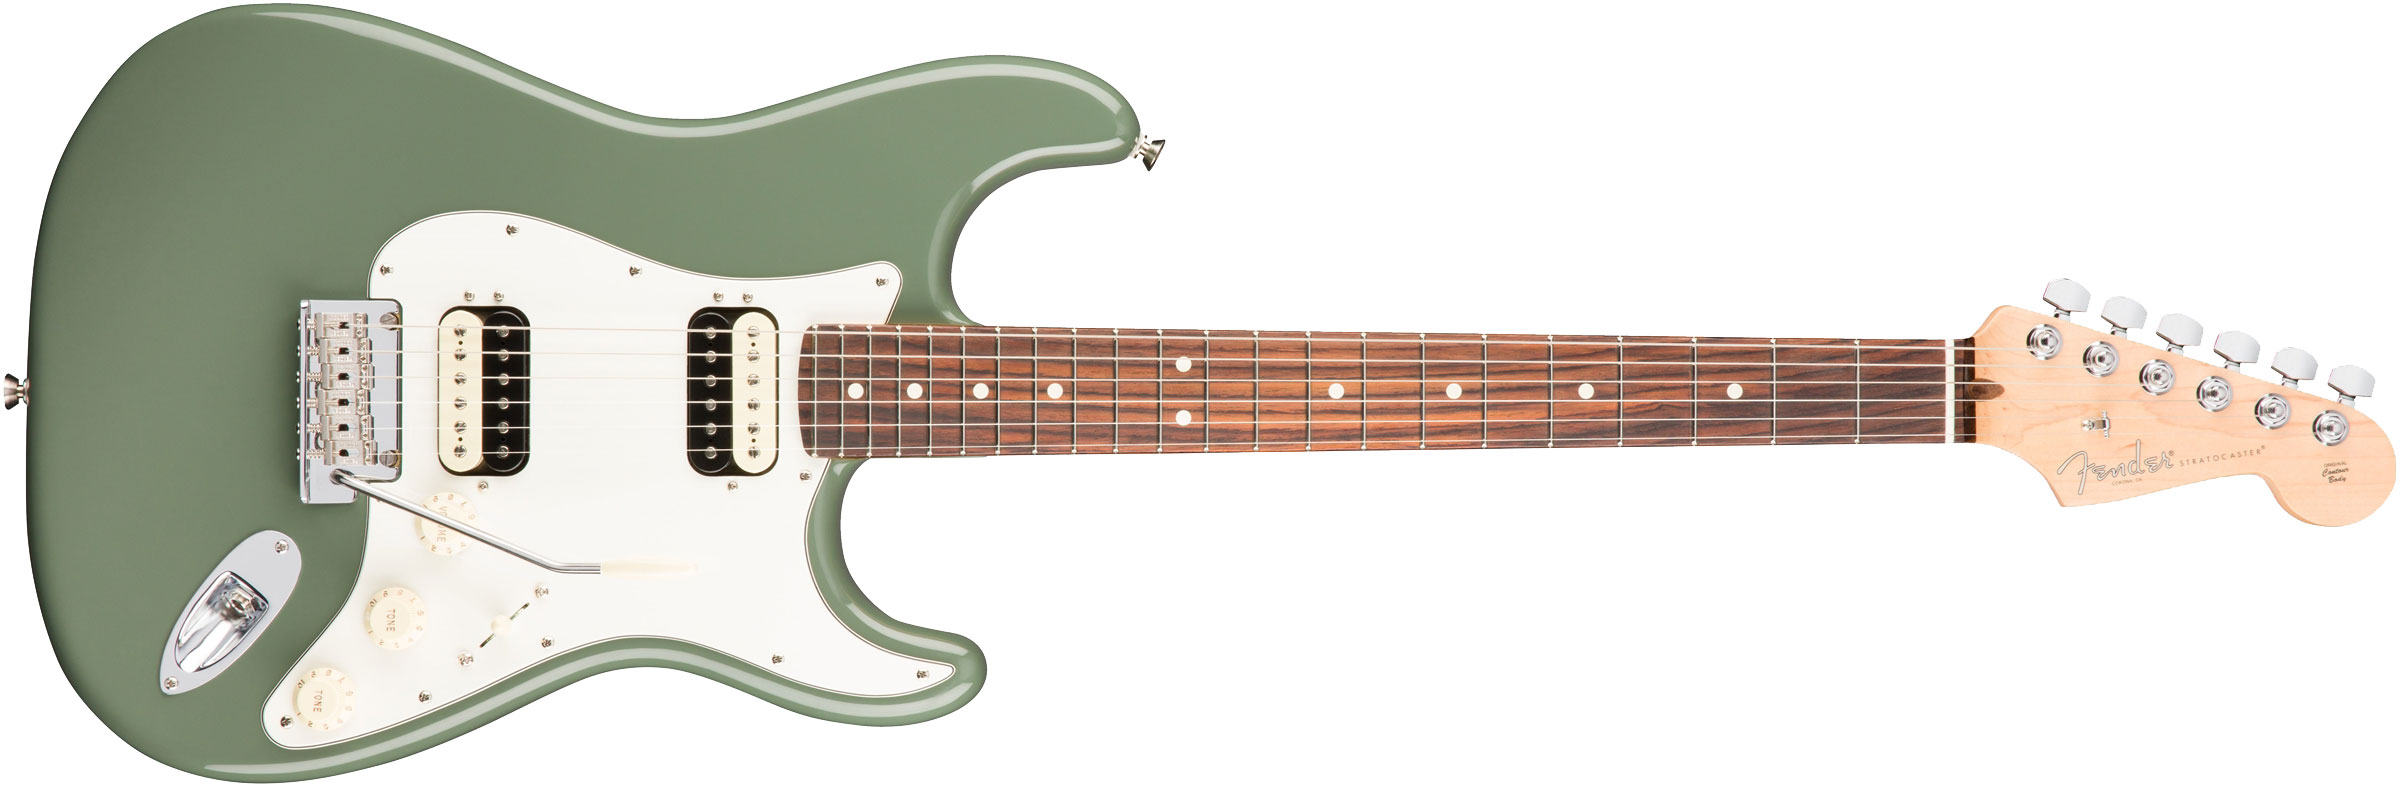 GUITARRA FENDER AM PROFESSIONAL STRATOCASTER SHAWBUCKER HH RW 011-3050-776 ANTIQUE OLIVE